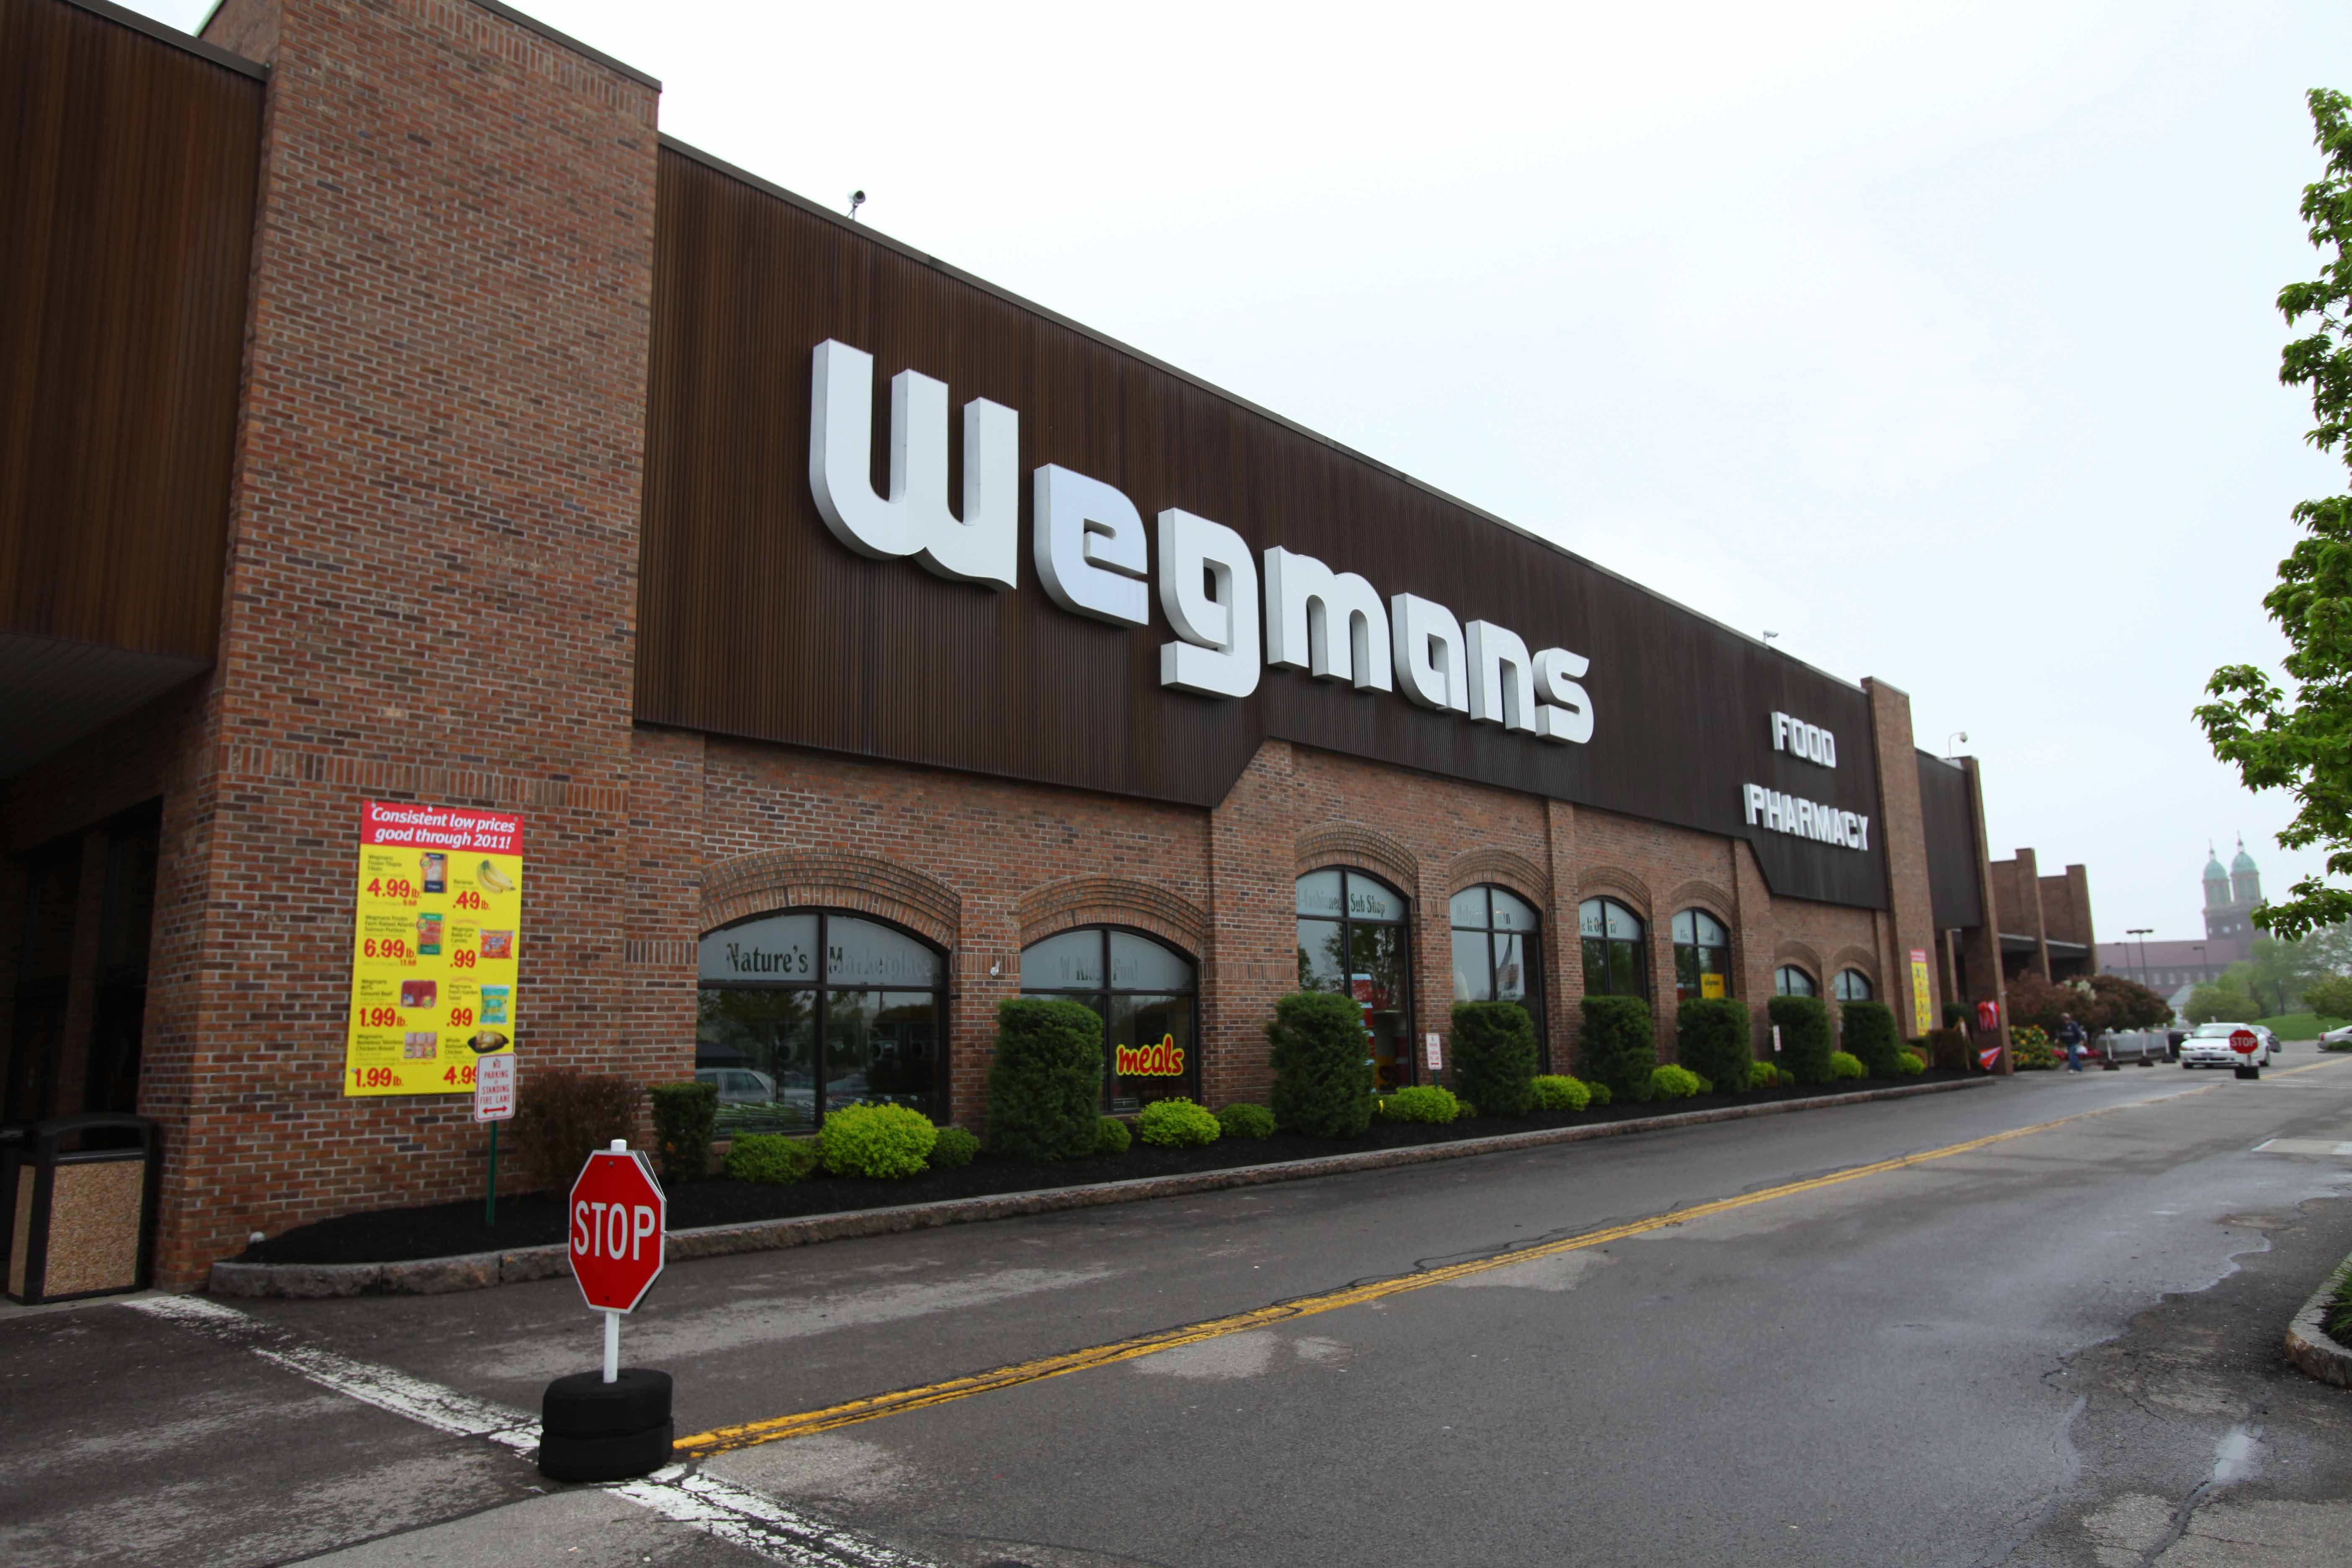 A liquor store co-owned by Nicole Wegman is to open soon in front of this Wegmans supermarket on Amherst Street in North Buffalo.